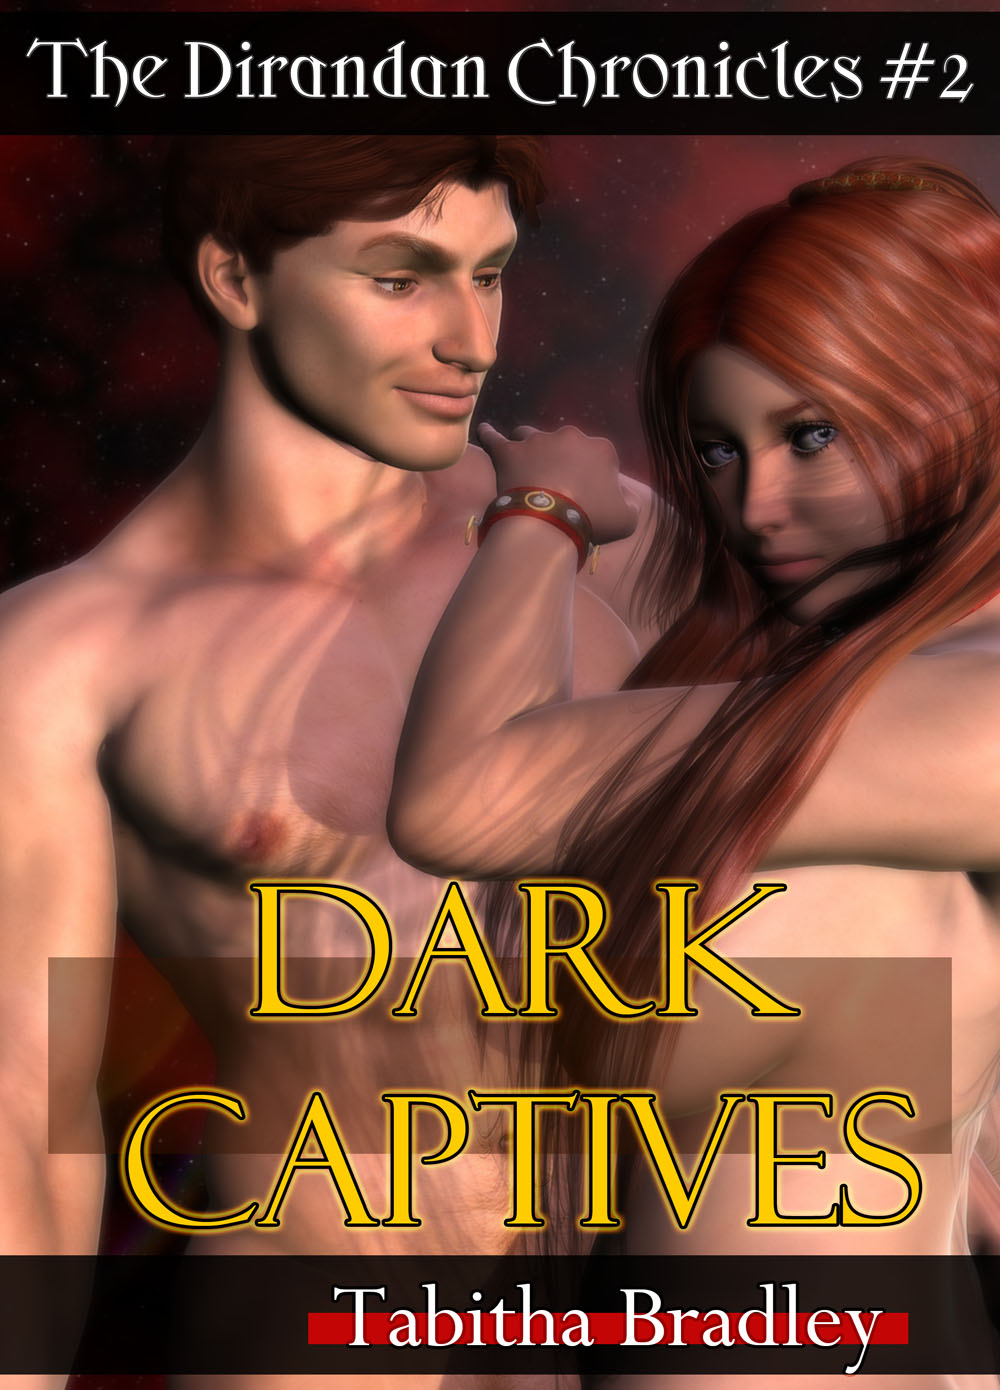 DARK CAPTIVES